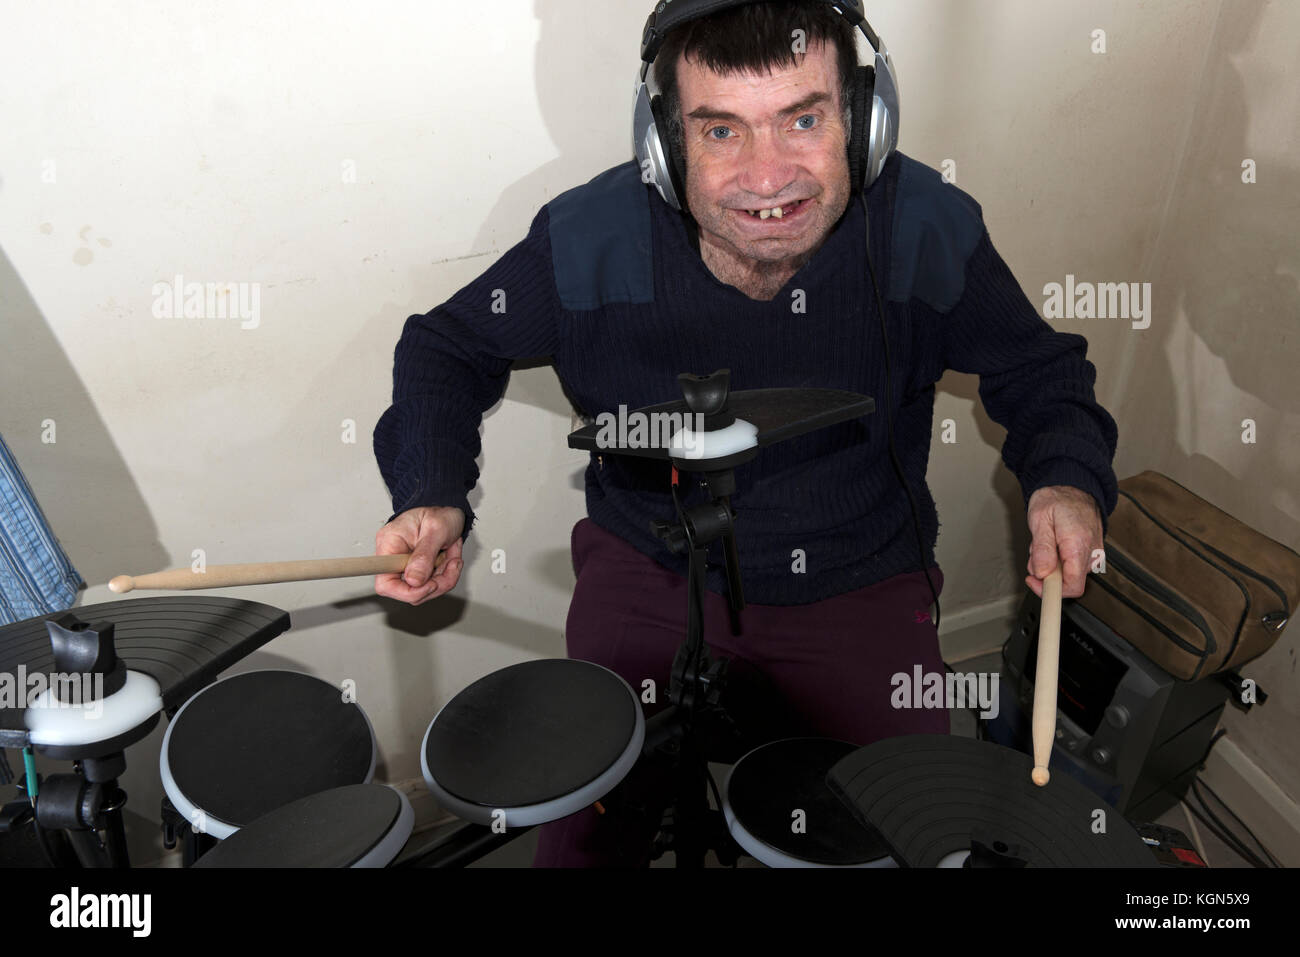 Man with learning disabilities playing electronic drums